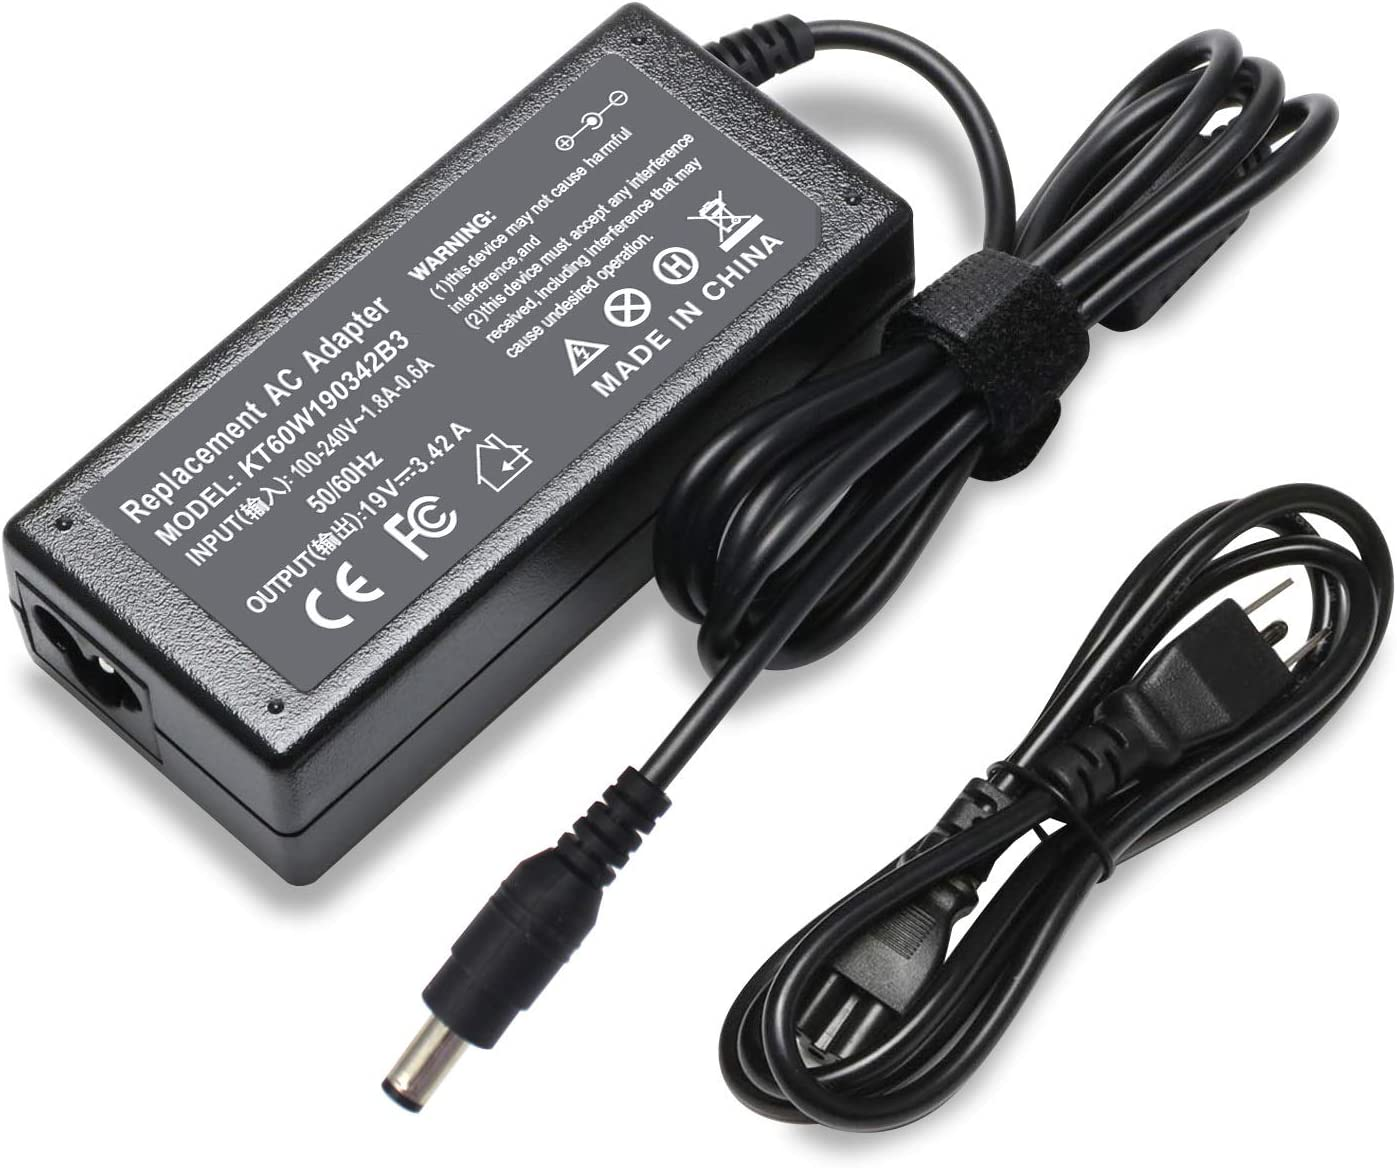 Keepow 19V 3.42A 65W Laptop Charger Compatible with Toshiba Satellite C55 C55D C55T C655 C675 C850 C855D C875 L645 L655D L675 L755 L855 L875 P745 P855 P875 S855, PA3714U-1ACA Power Supply Cord